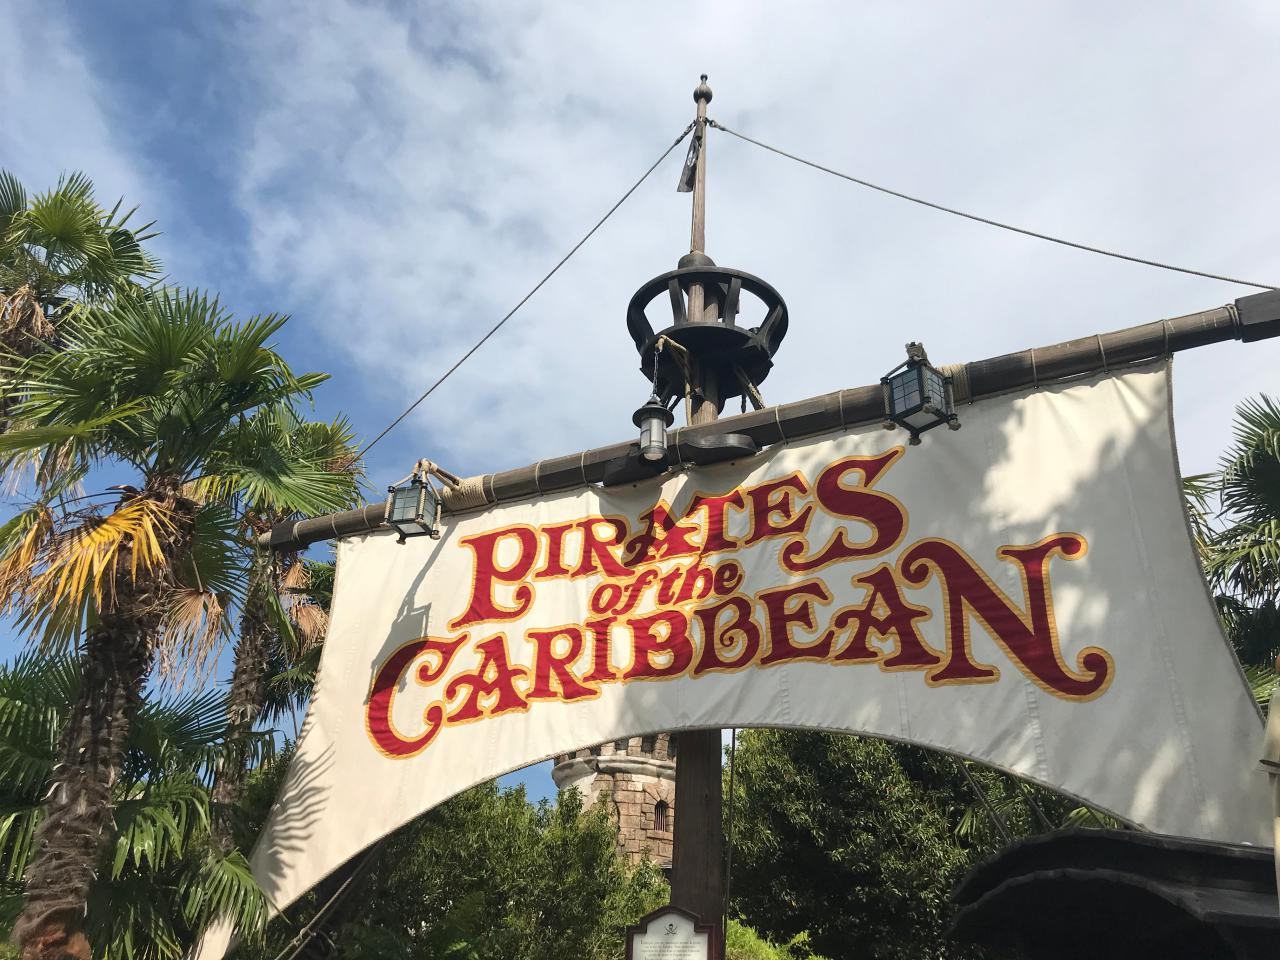 Pirates of the Caribbean - Disneyland Paris im Juli 2018